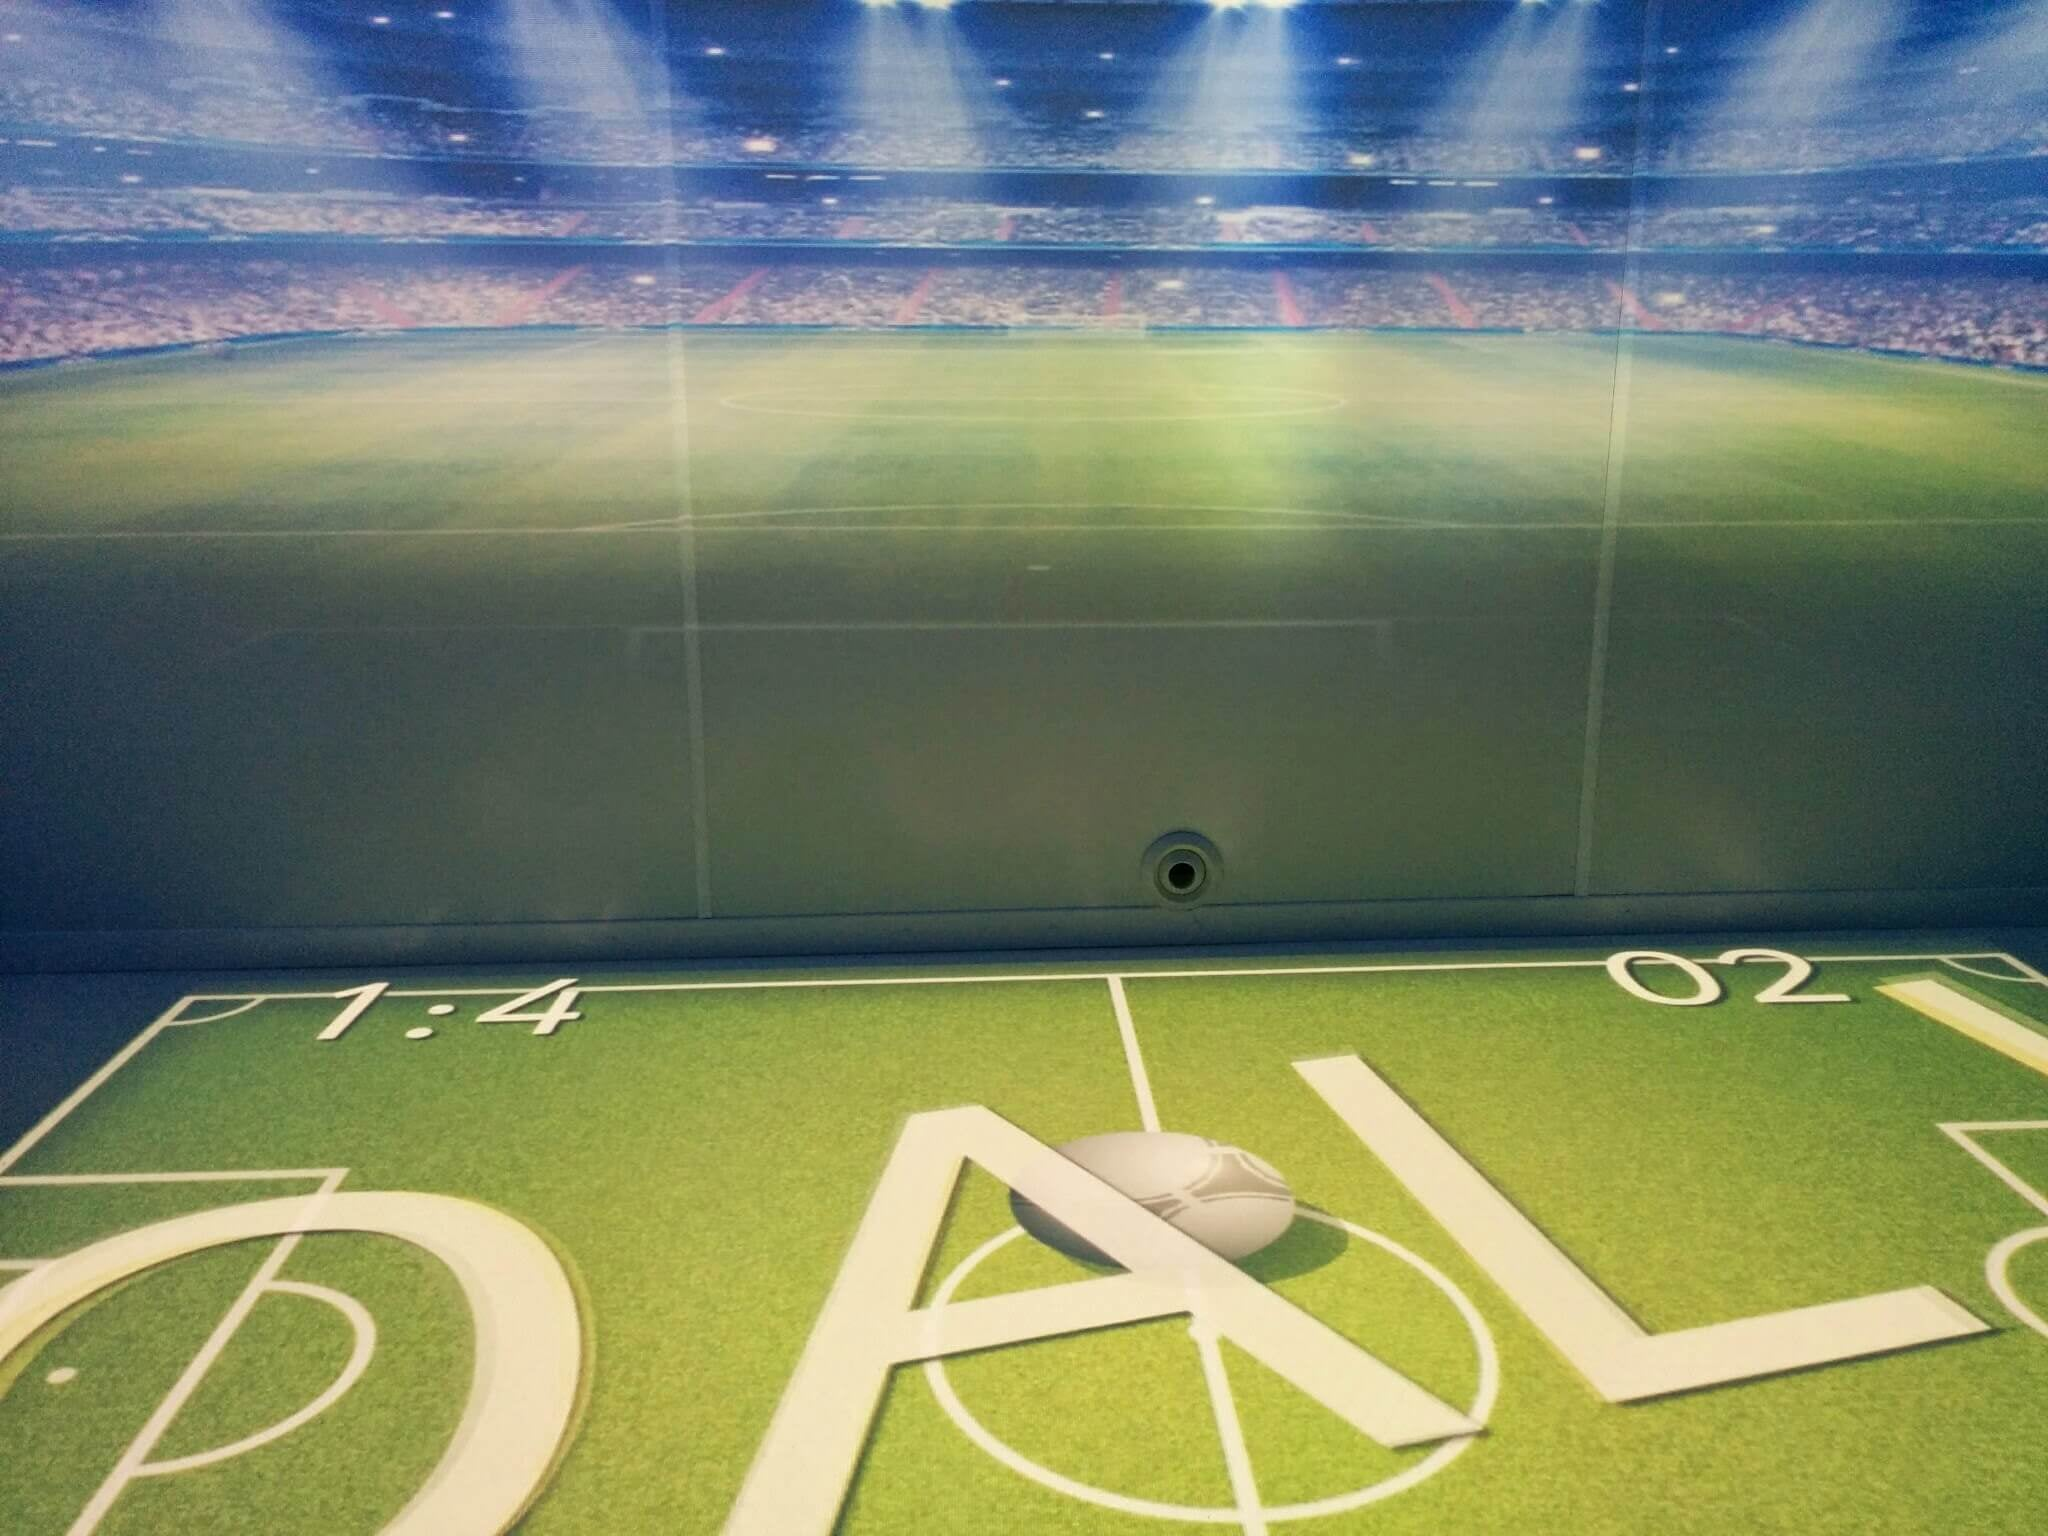 Take to the field for a physio session -  Let pupils experience stepping out onto the hallowed turf of their favourite football club and provide them with a range of activities and exercises through fun, interactive games that will have them stretching and moving.